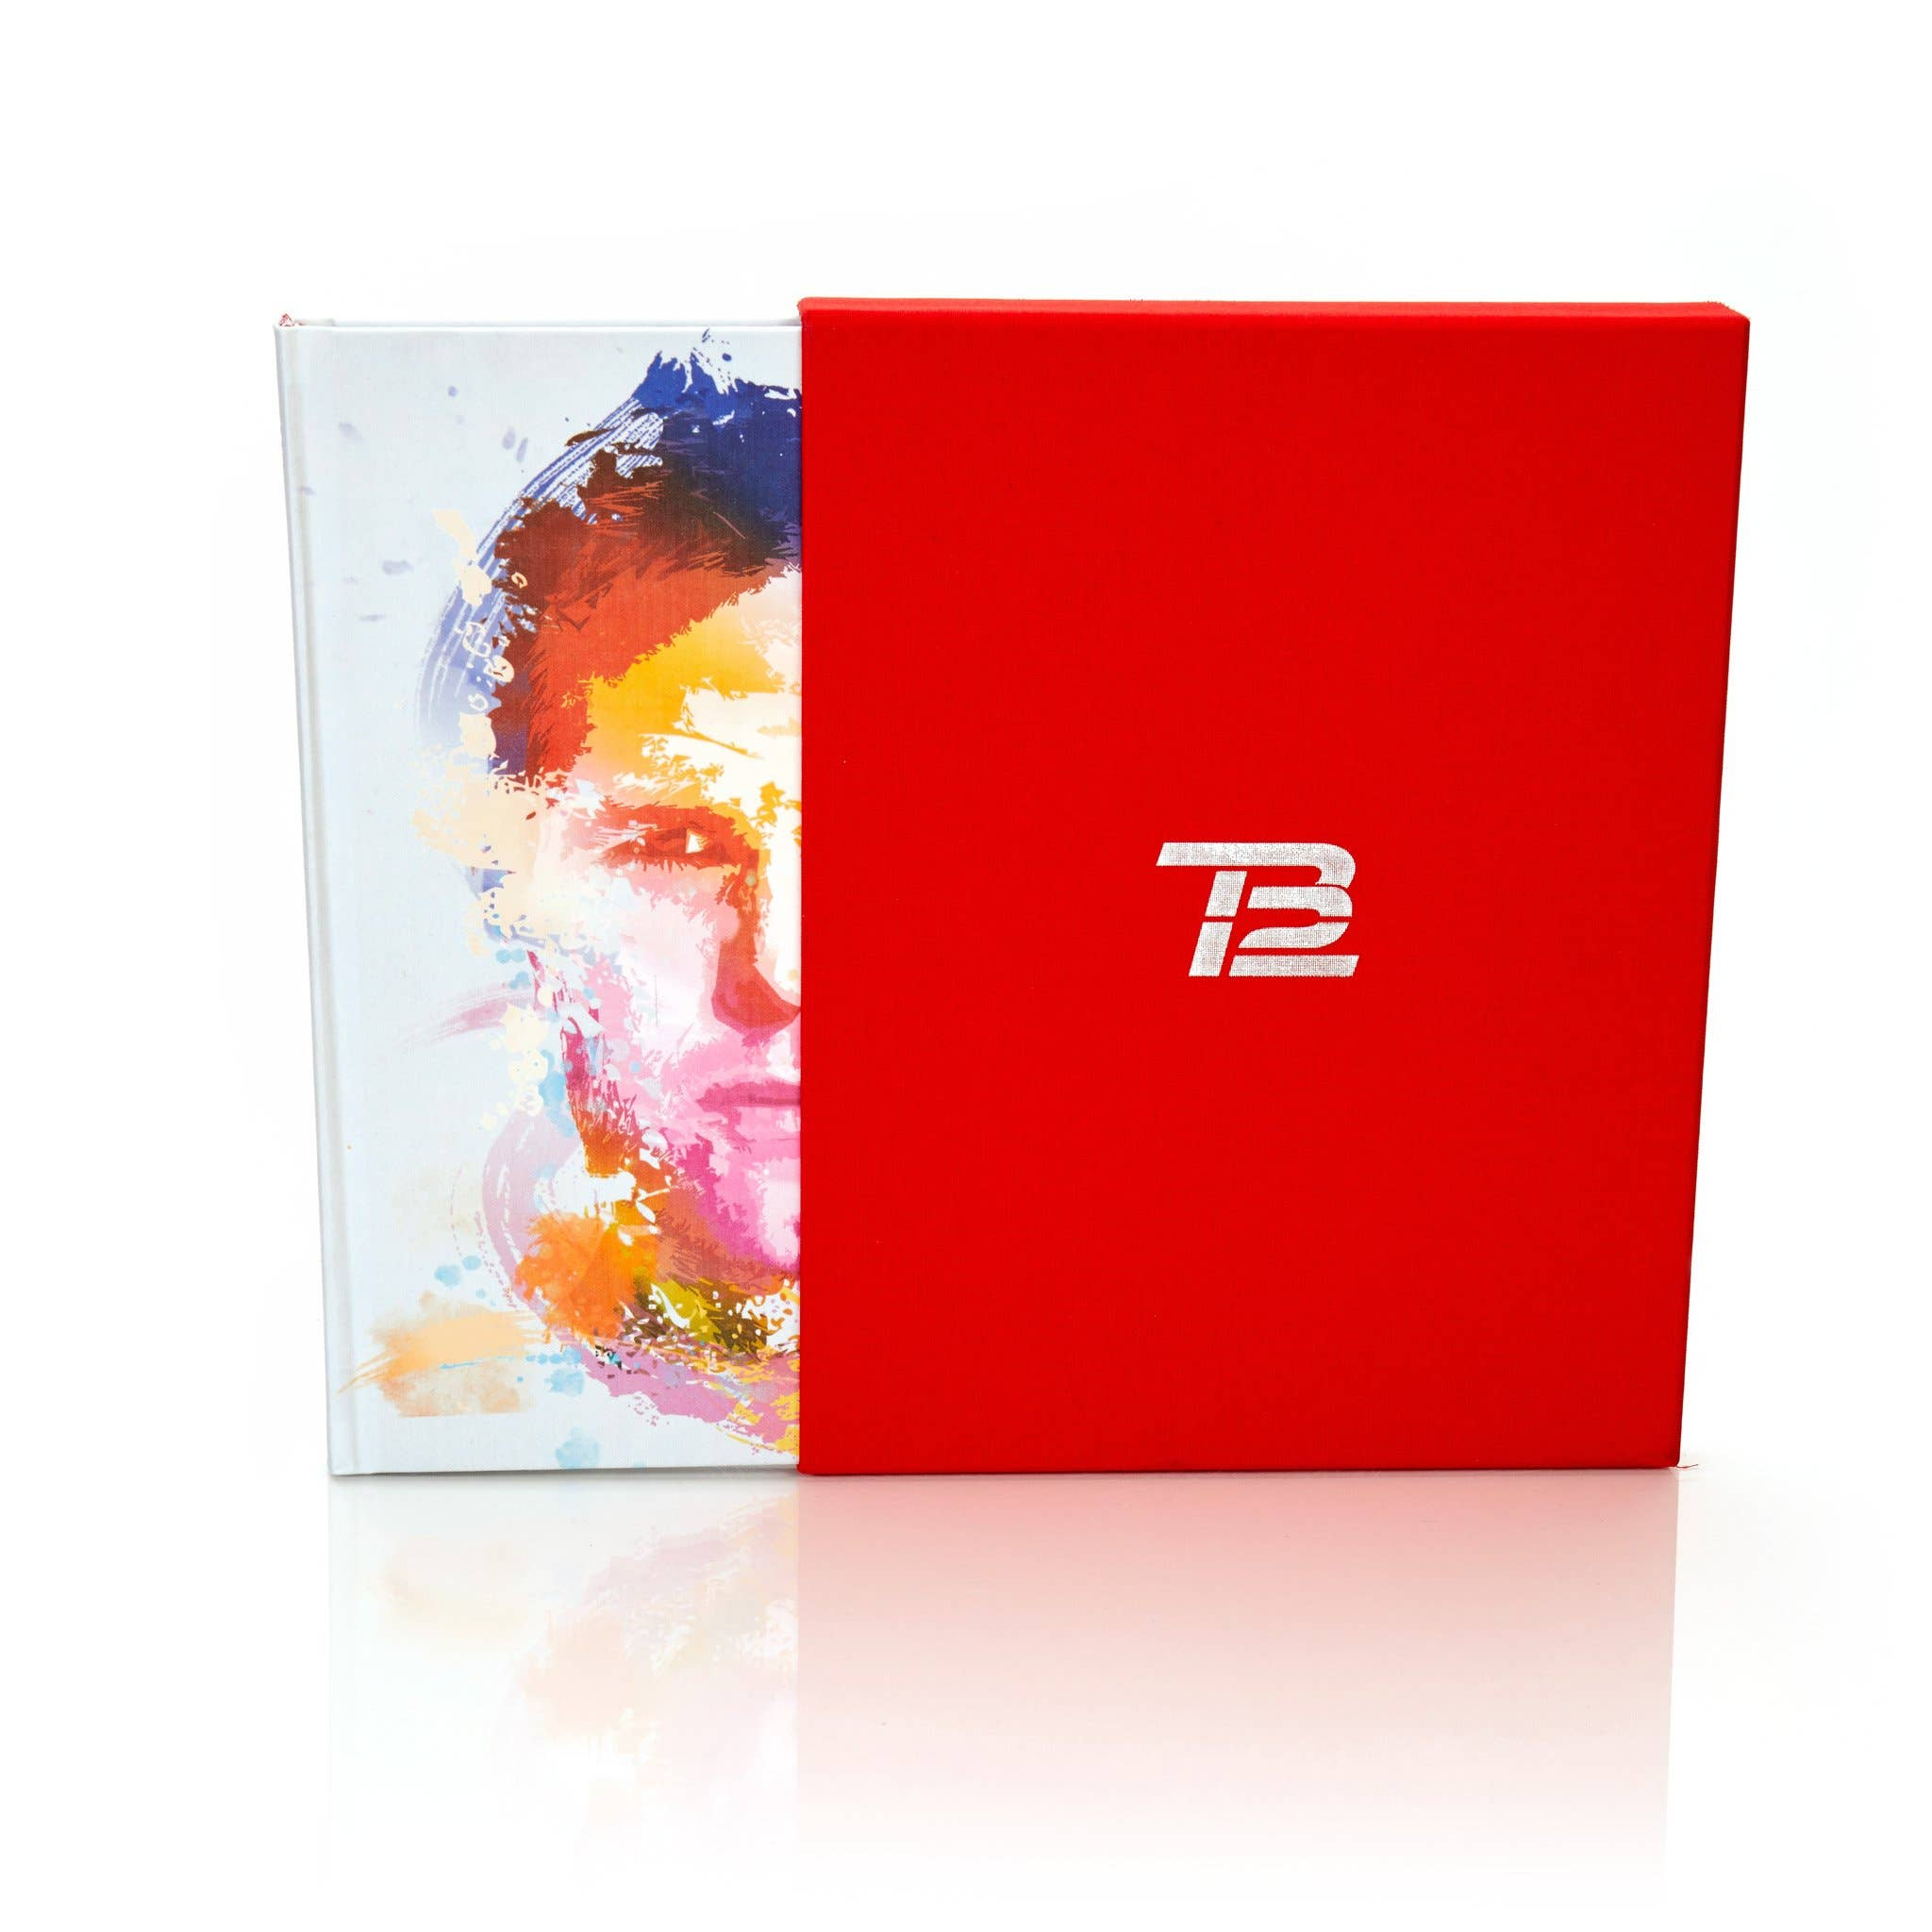 Signed Limited Edition TB12 Method Book by Tom Brady